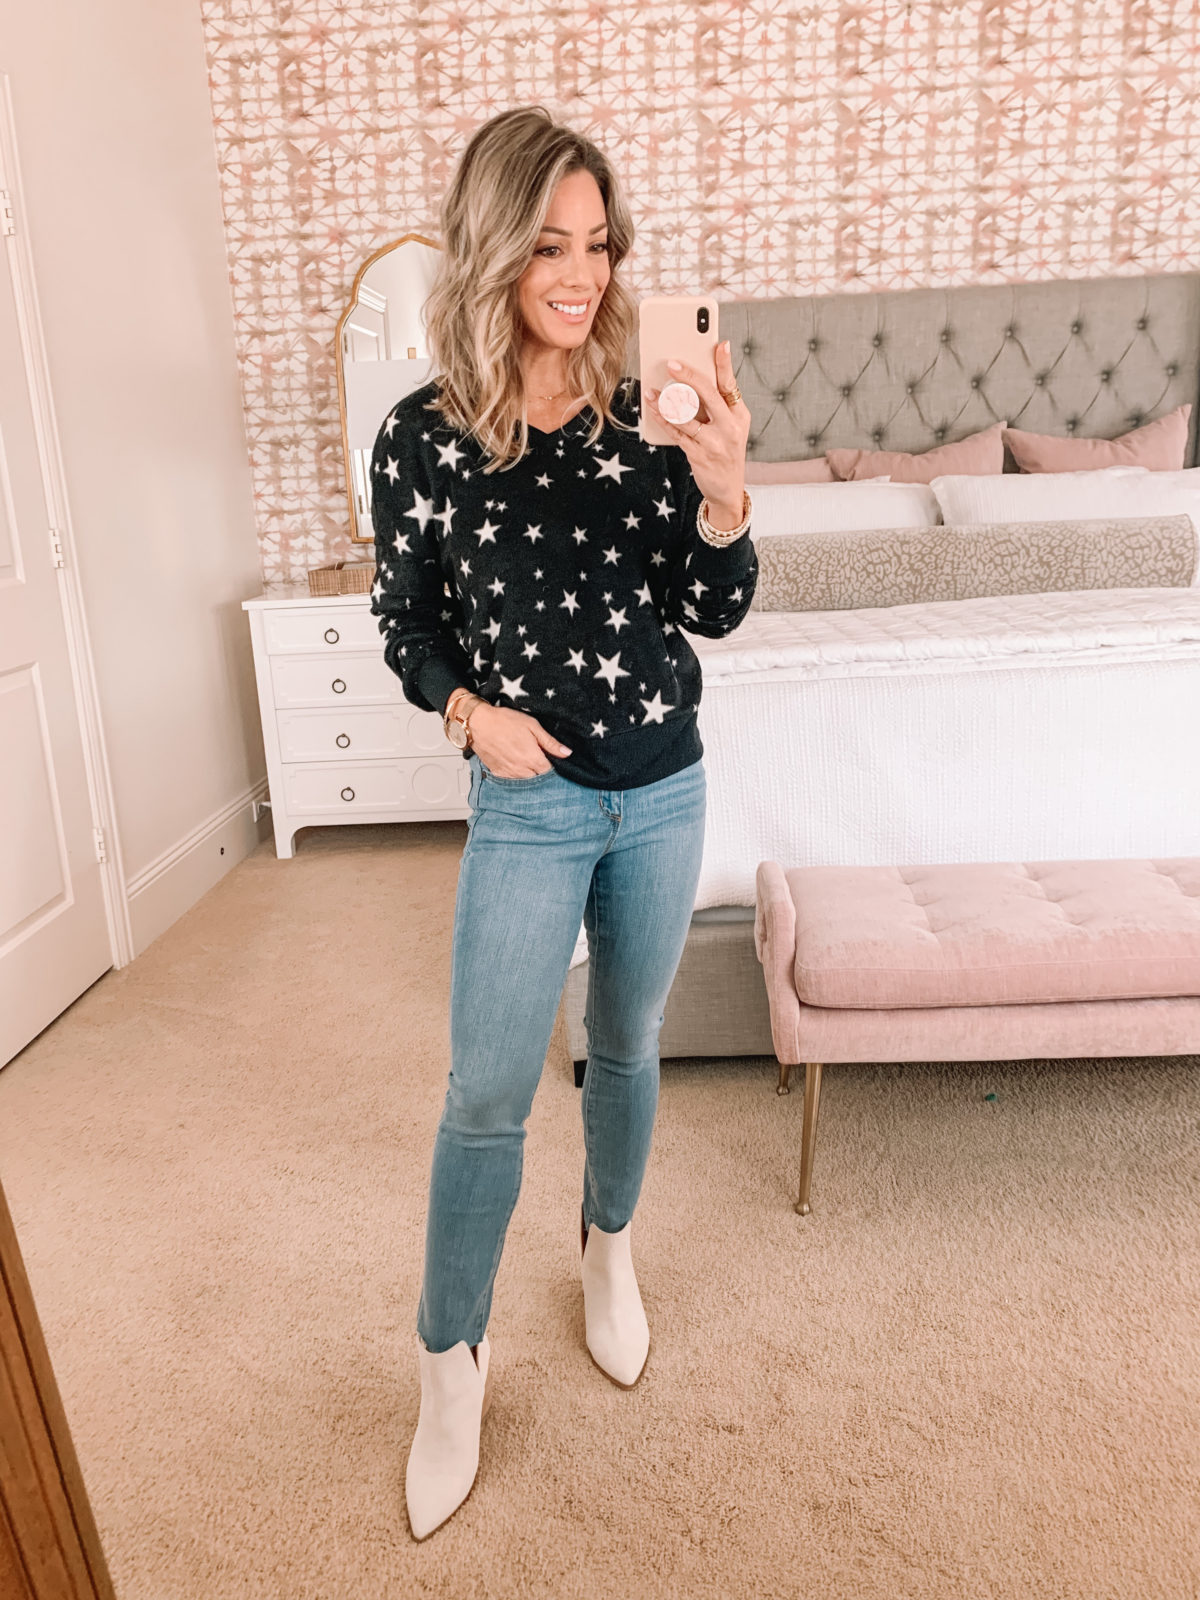 Dressing Room Finds, Star Sweater, Jeans, Booties